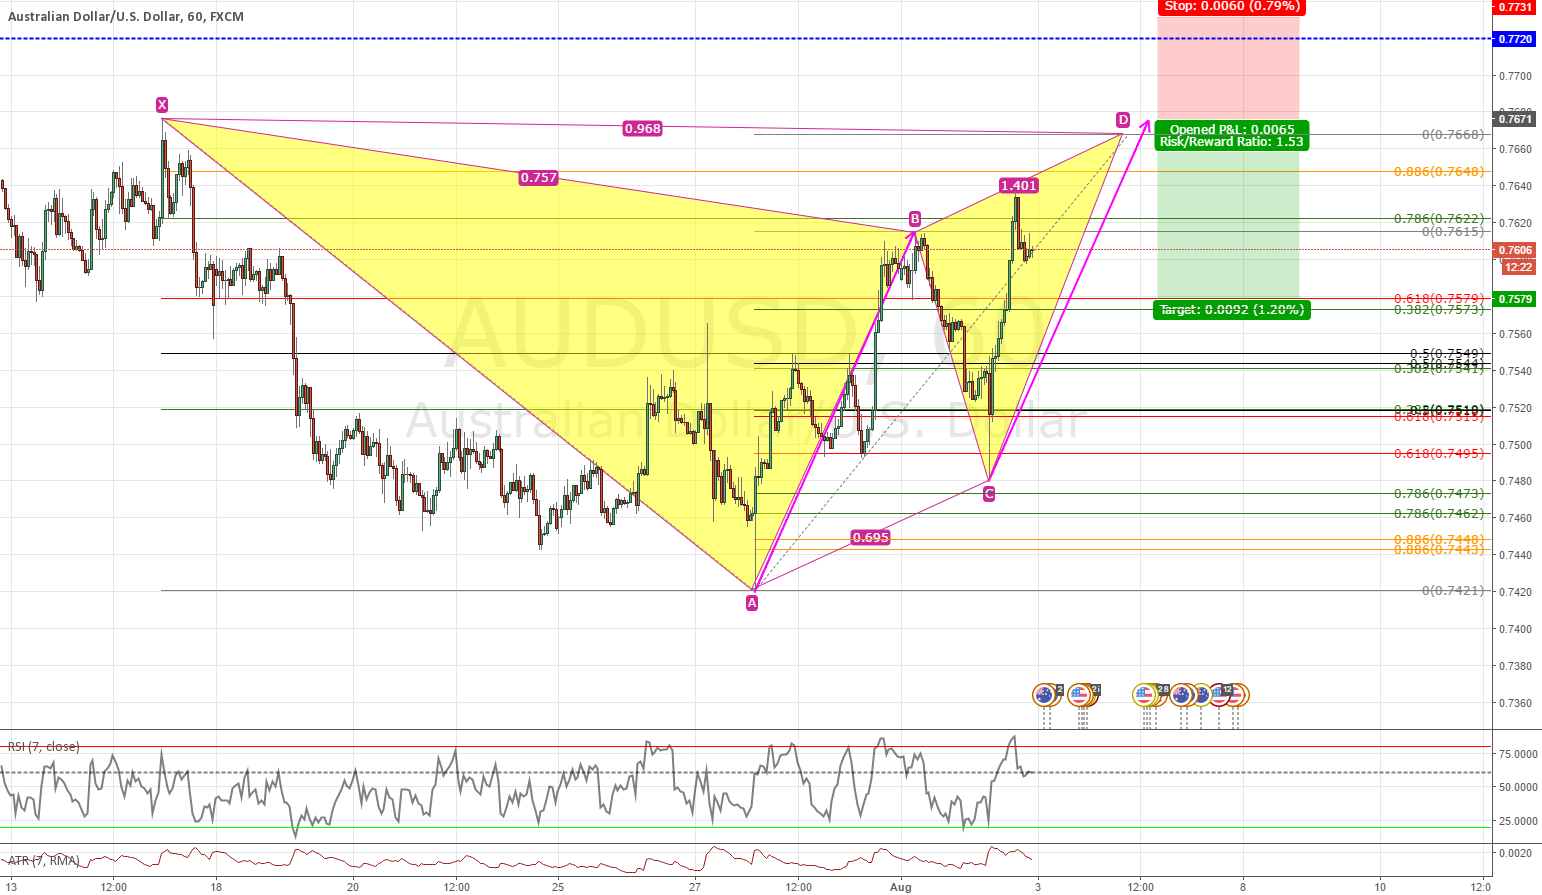 Bearish Gartley AUDUSD 1H TF